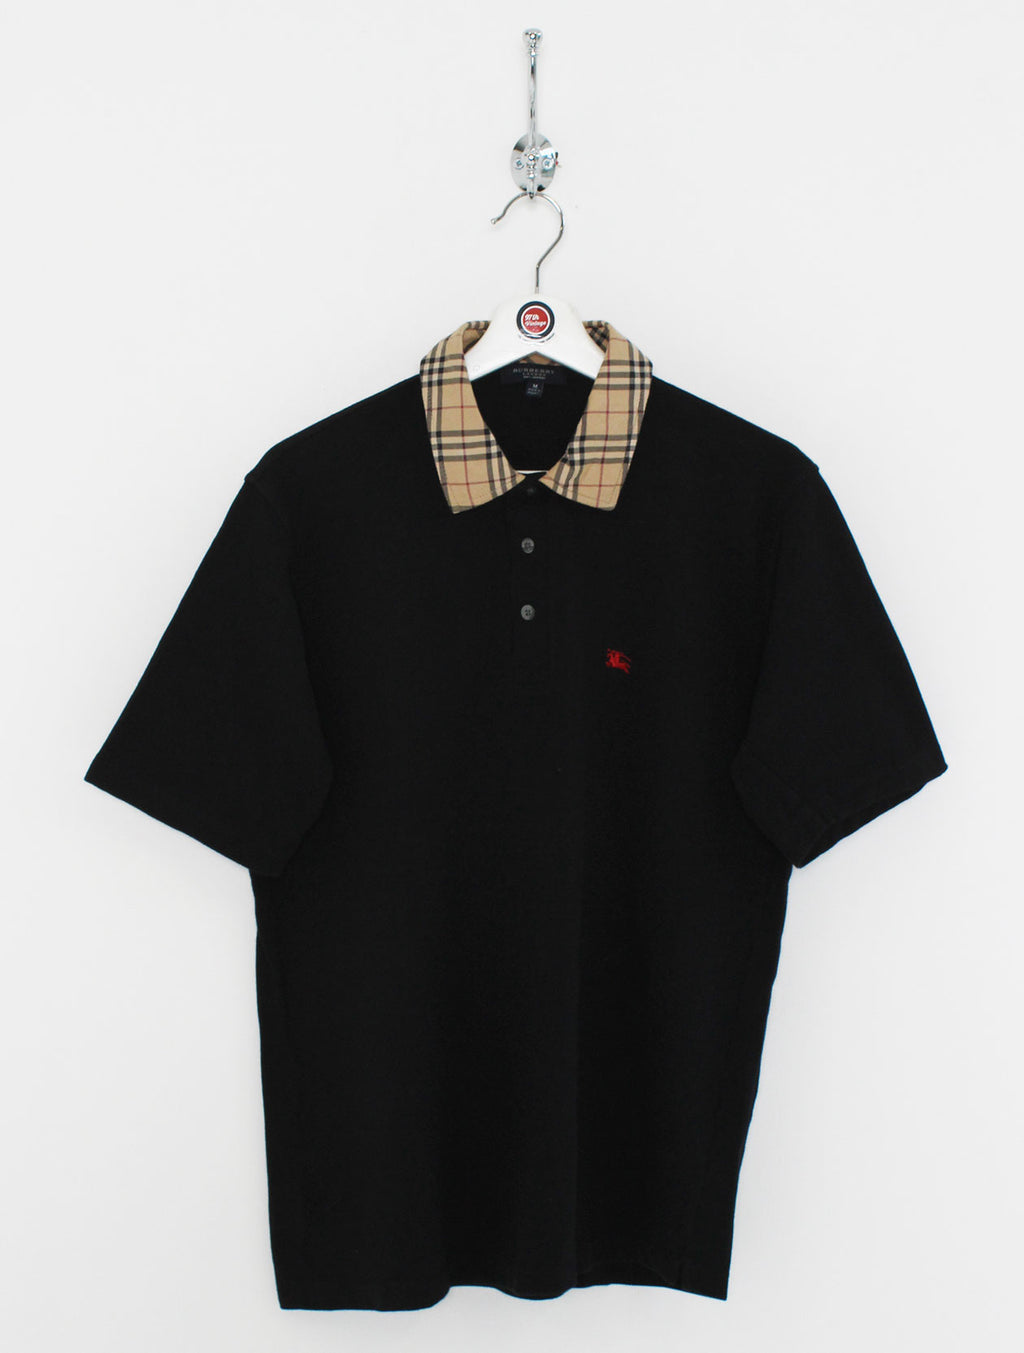 Burberry Polo Shirt (M)